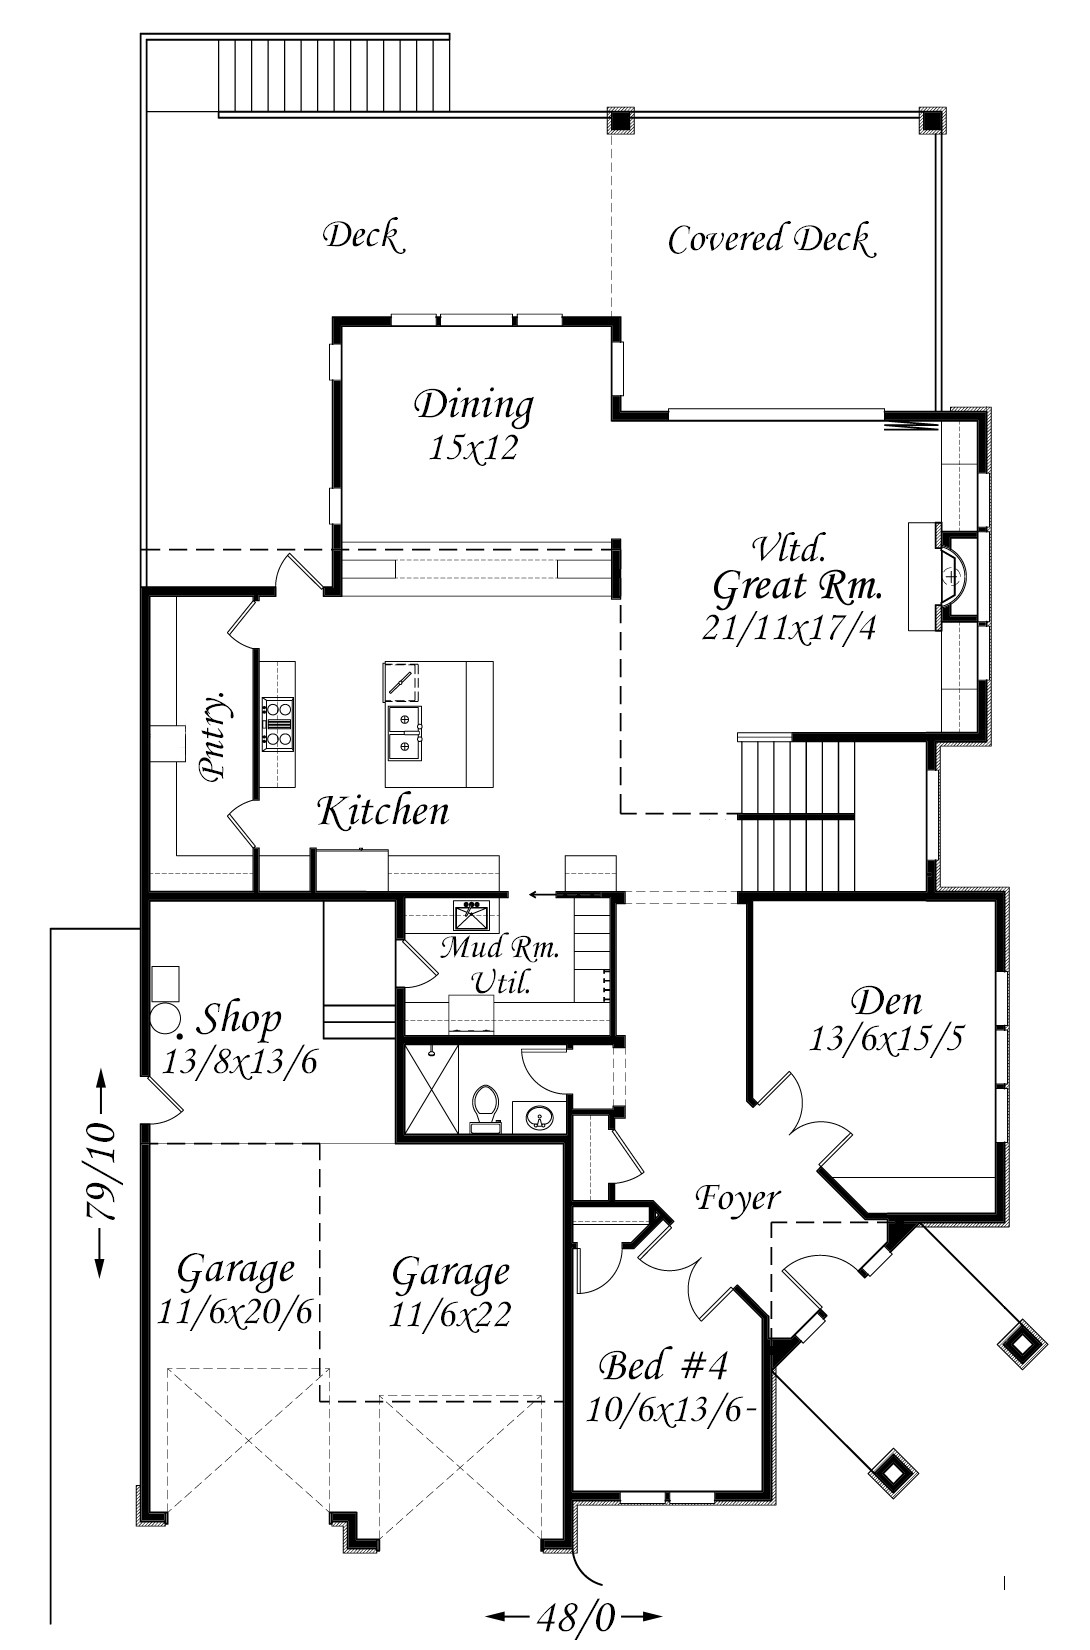 Smith rock house plan old world european style house plans for Old world european house plans